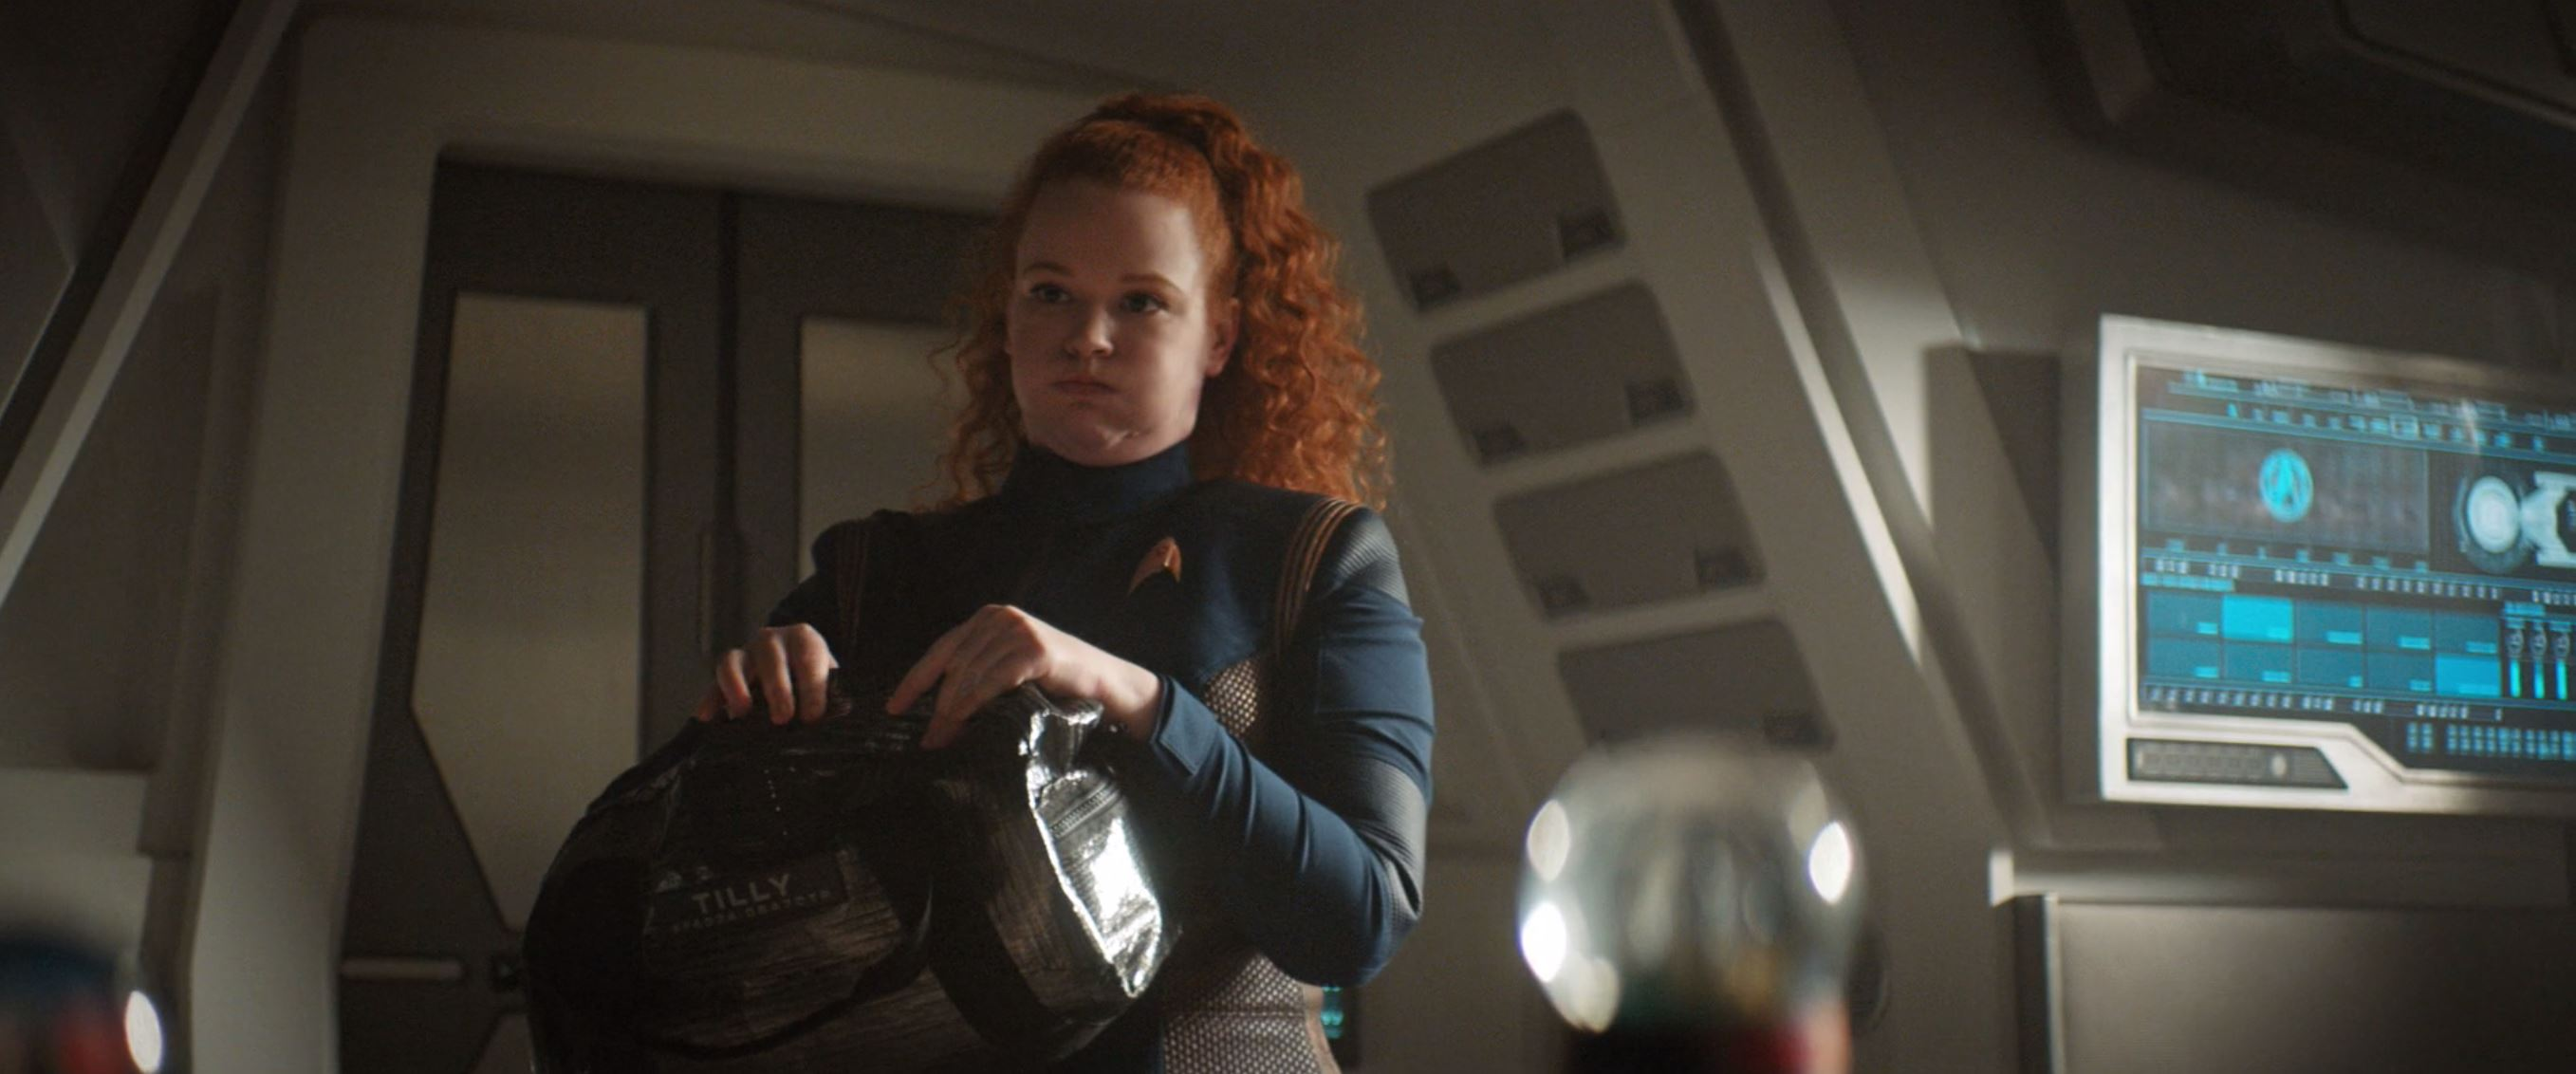 The Star Trek Discovery Podcast: STDP 038 - Such Sweet